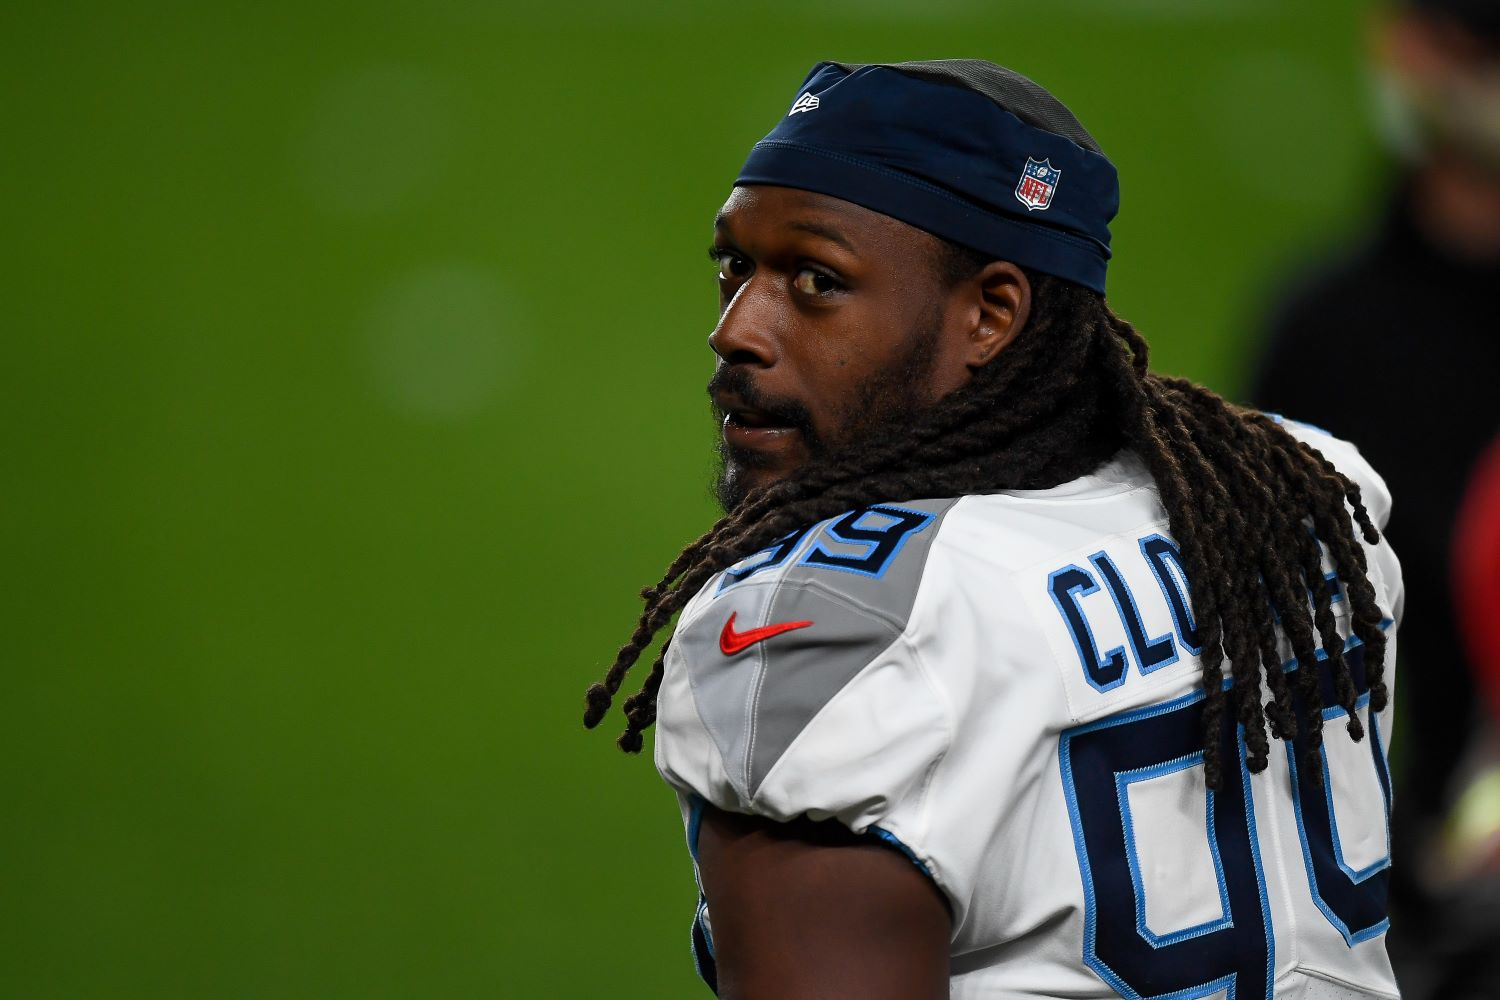 Jadeveon Clowney may not play again this season if he has to undergo surgery. Has the former No. 1 pick played his final snap for the Titans?